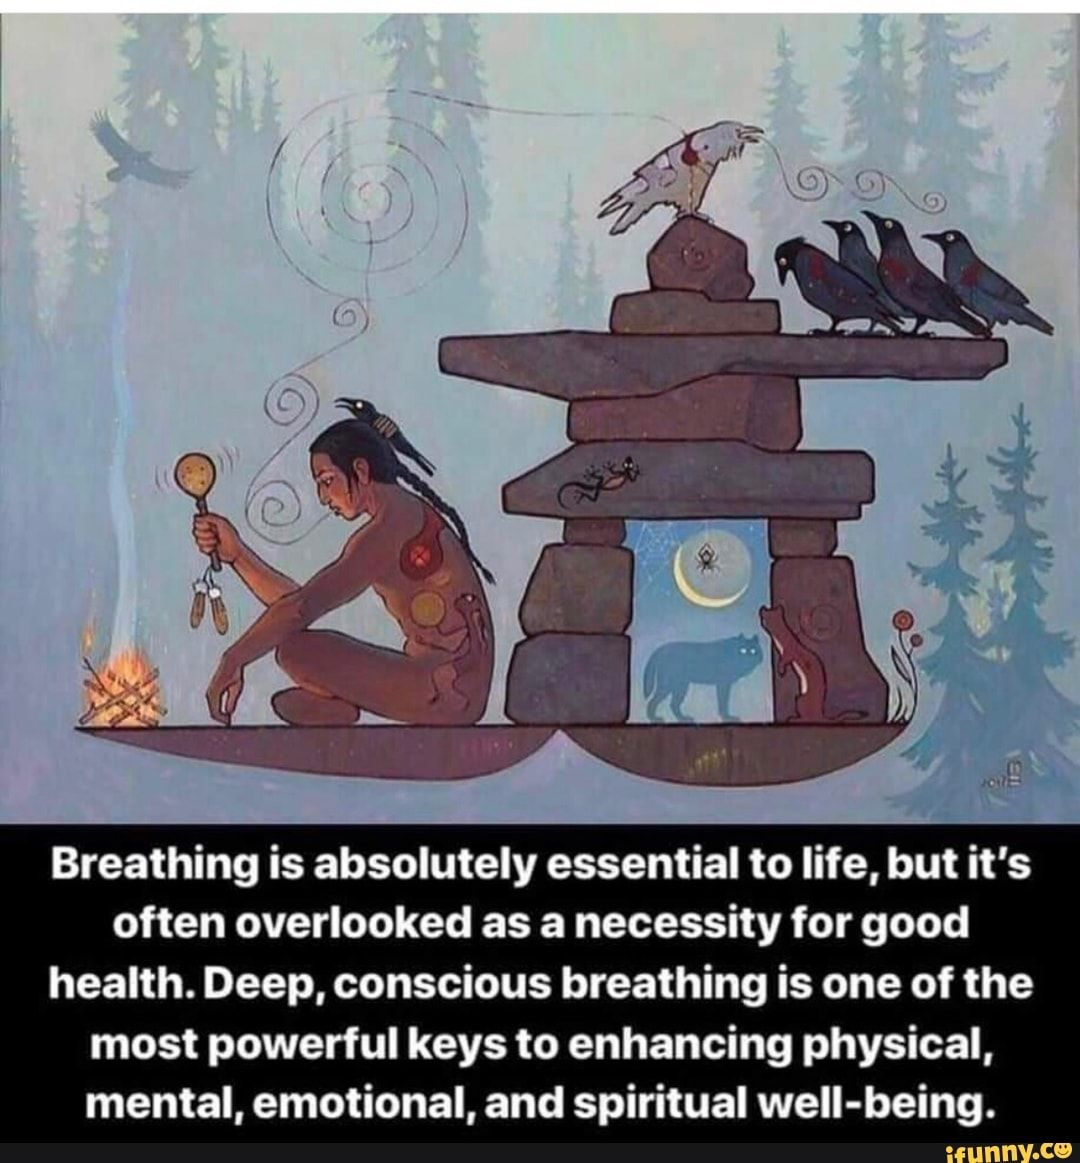 Breathing is absolutely essential to life, but it's often overlooked as a necessity for good health. Deep, conscious breathing is one of the most powerful keys to enhancing physical, mental, emotional, and spiritual weIl-being. - )